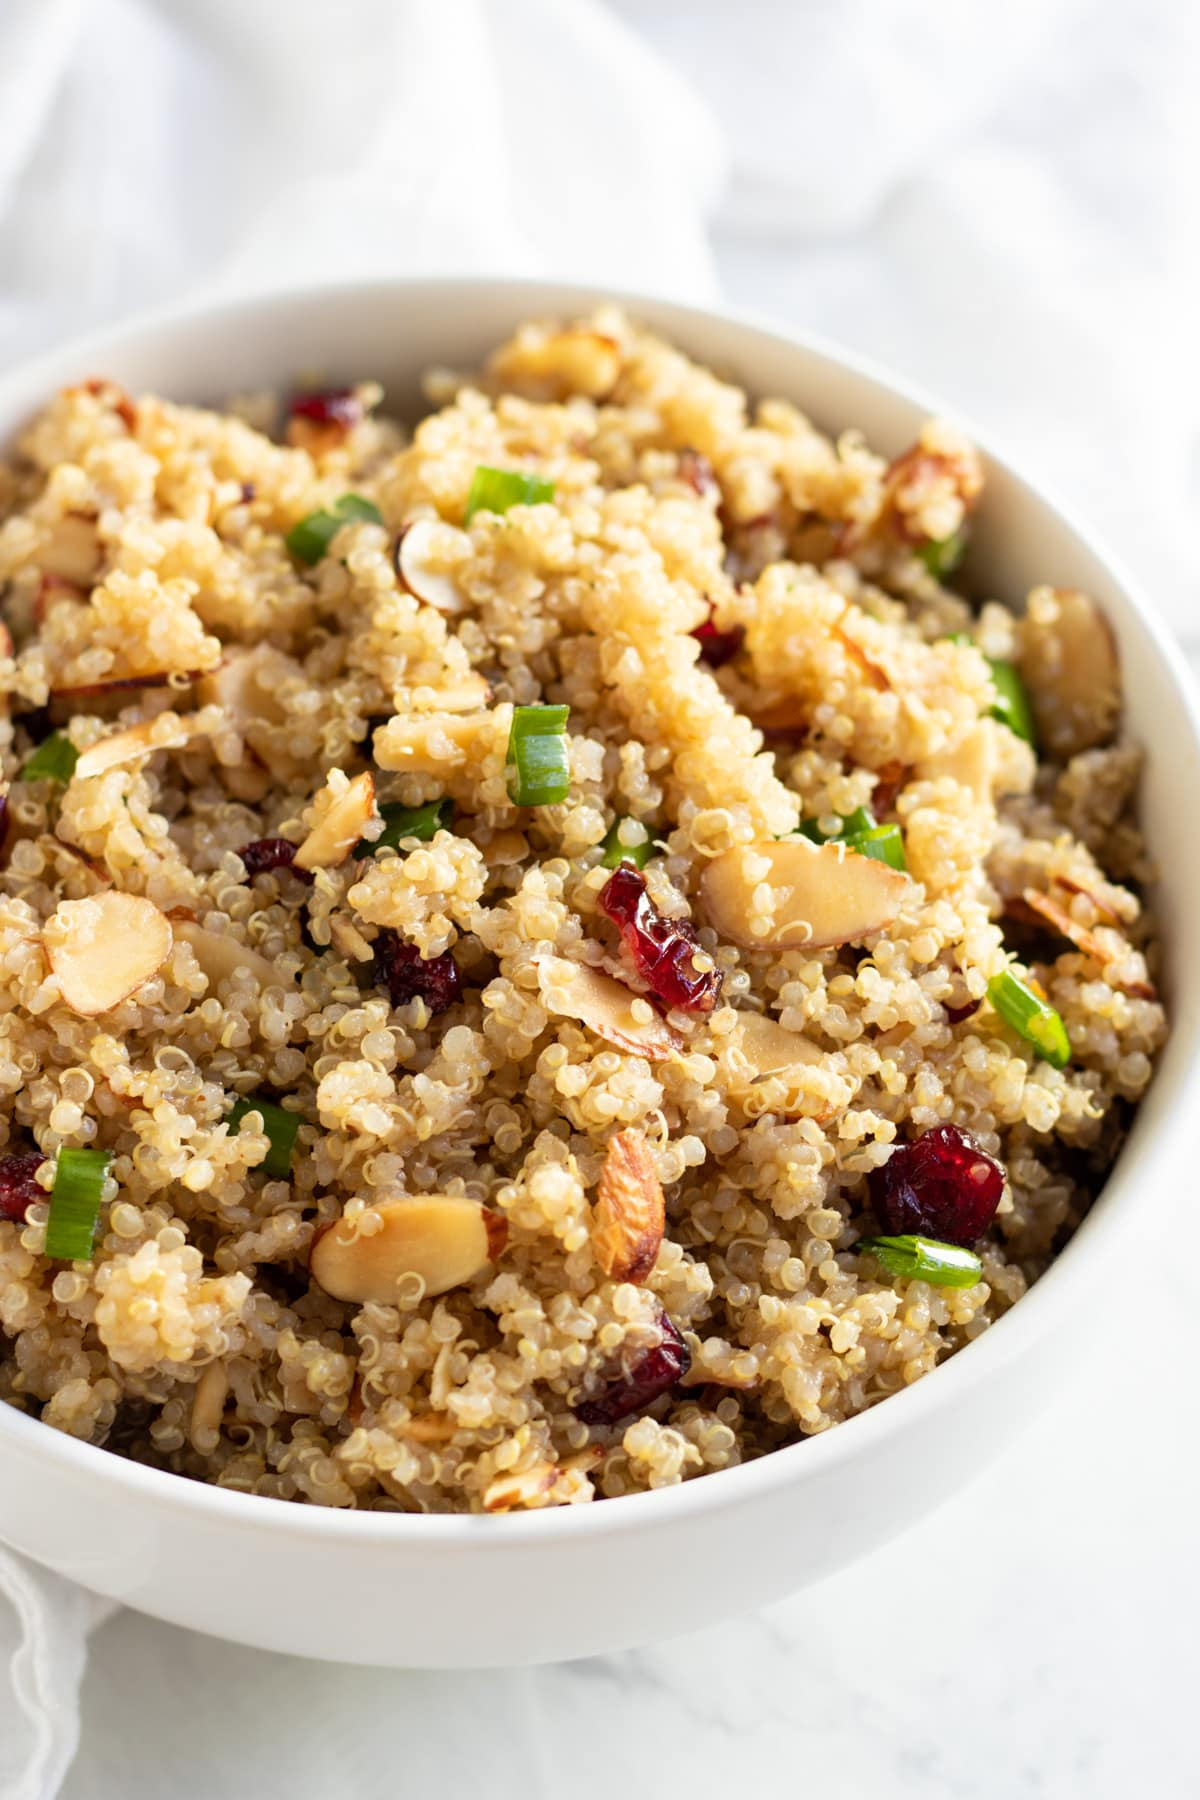 A close up of a quinoa salad dotted with dried cranberries, toasted almond slices, and sliced green onion tops.